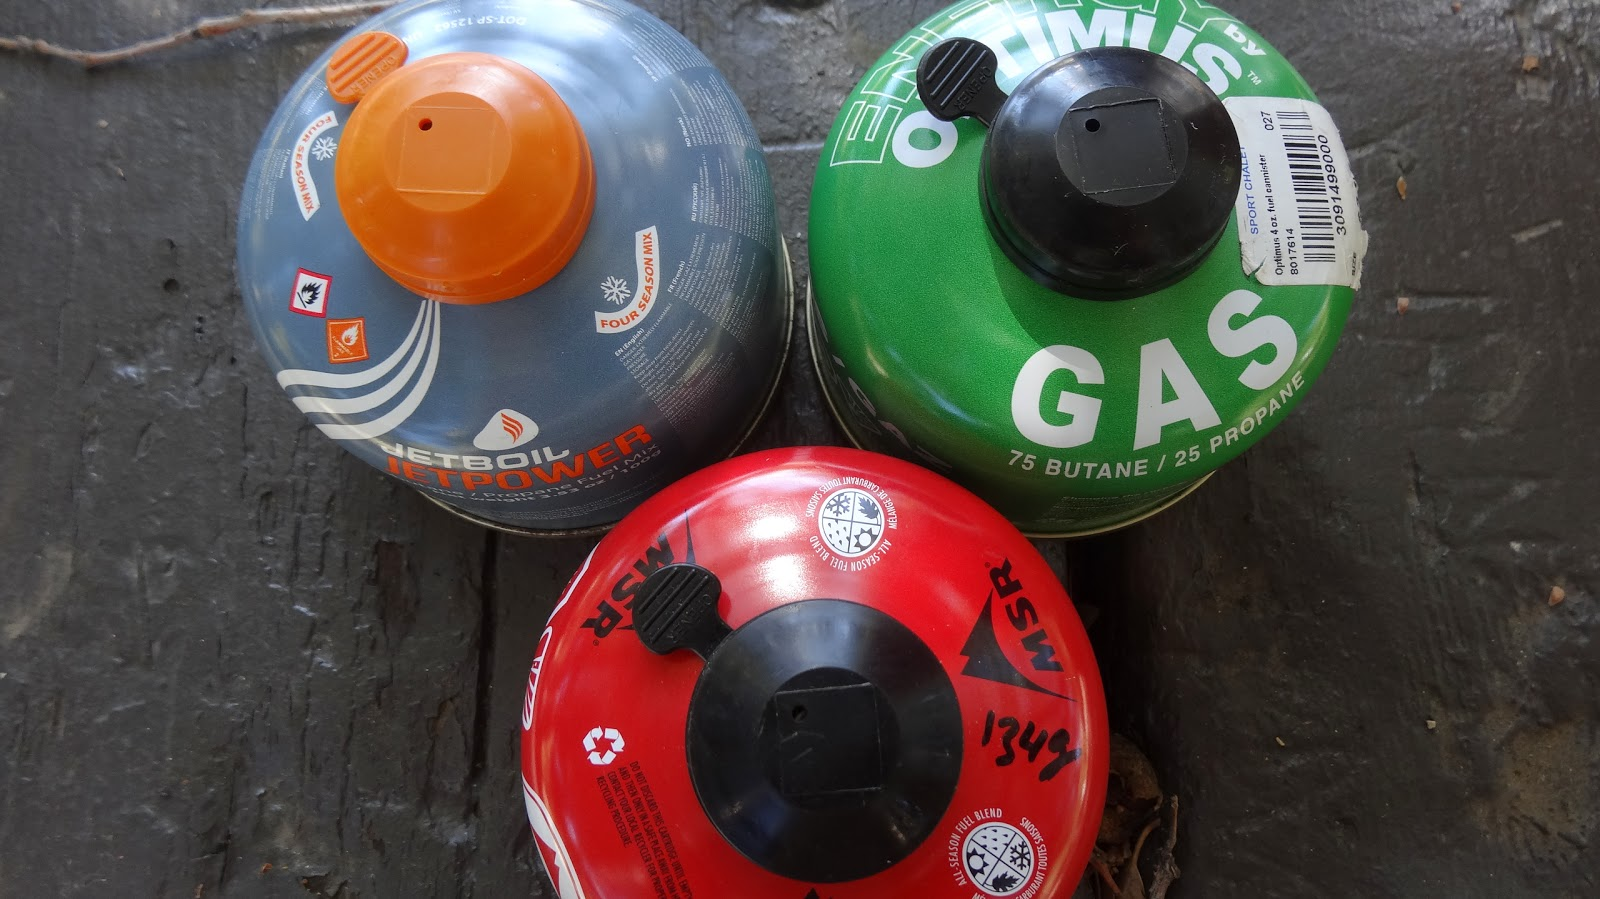 Adventures In Stoving: Can I Use Any Brand of Gas Canister?